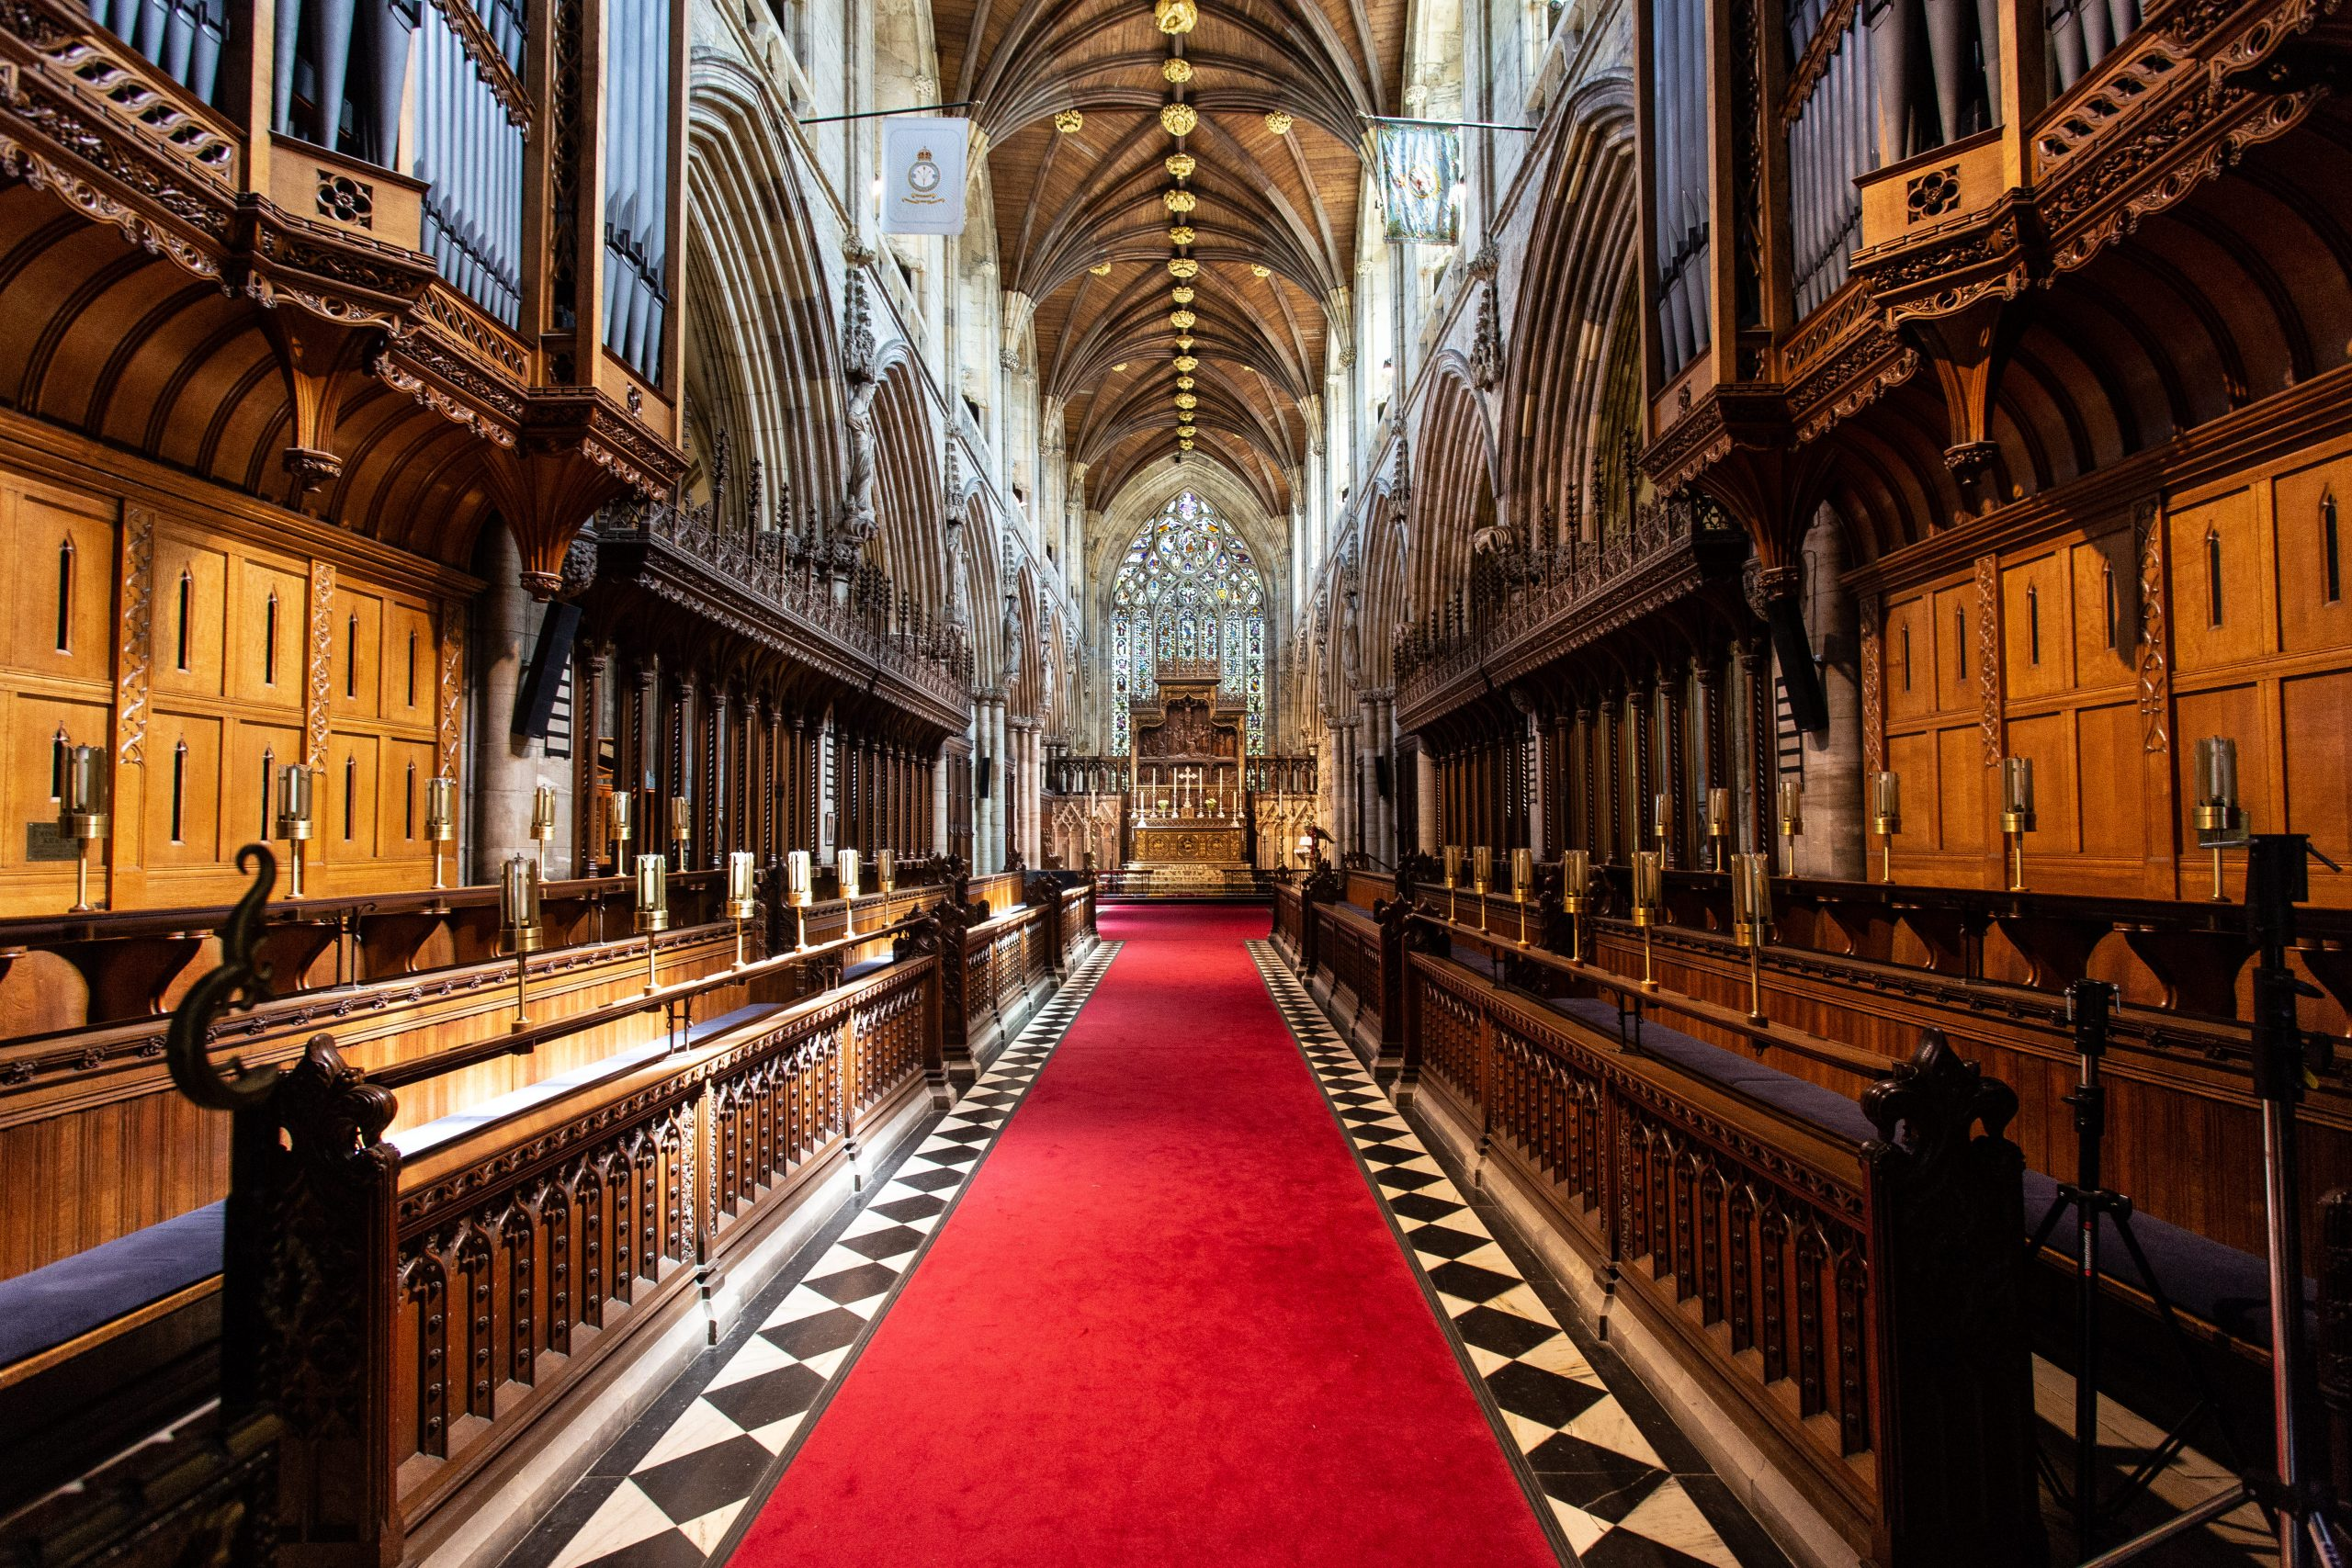 Selby Abbey's celebrated interior